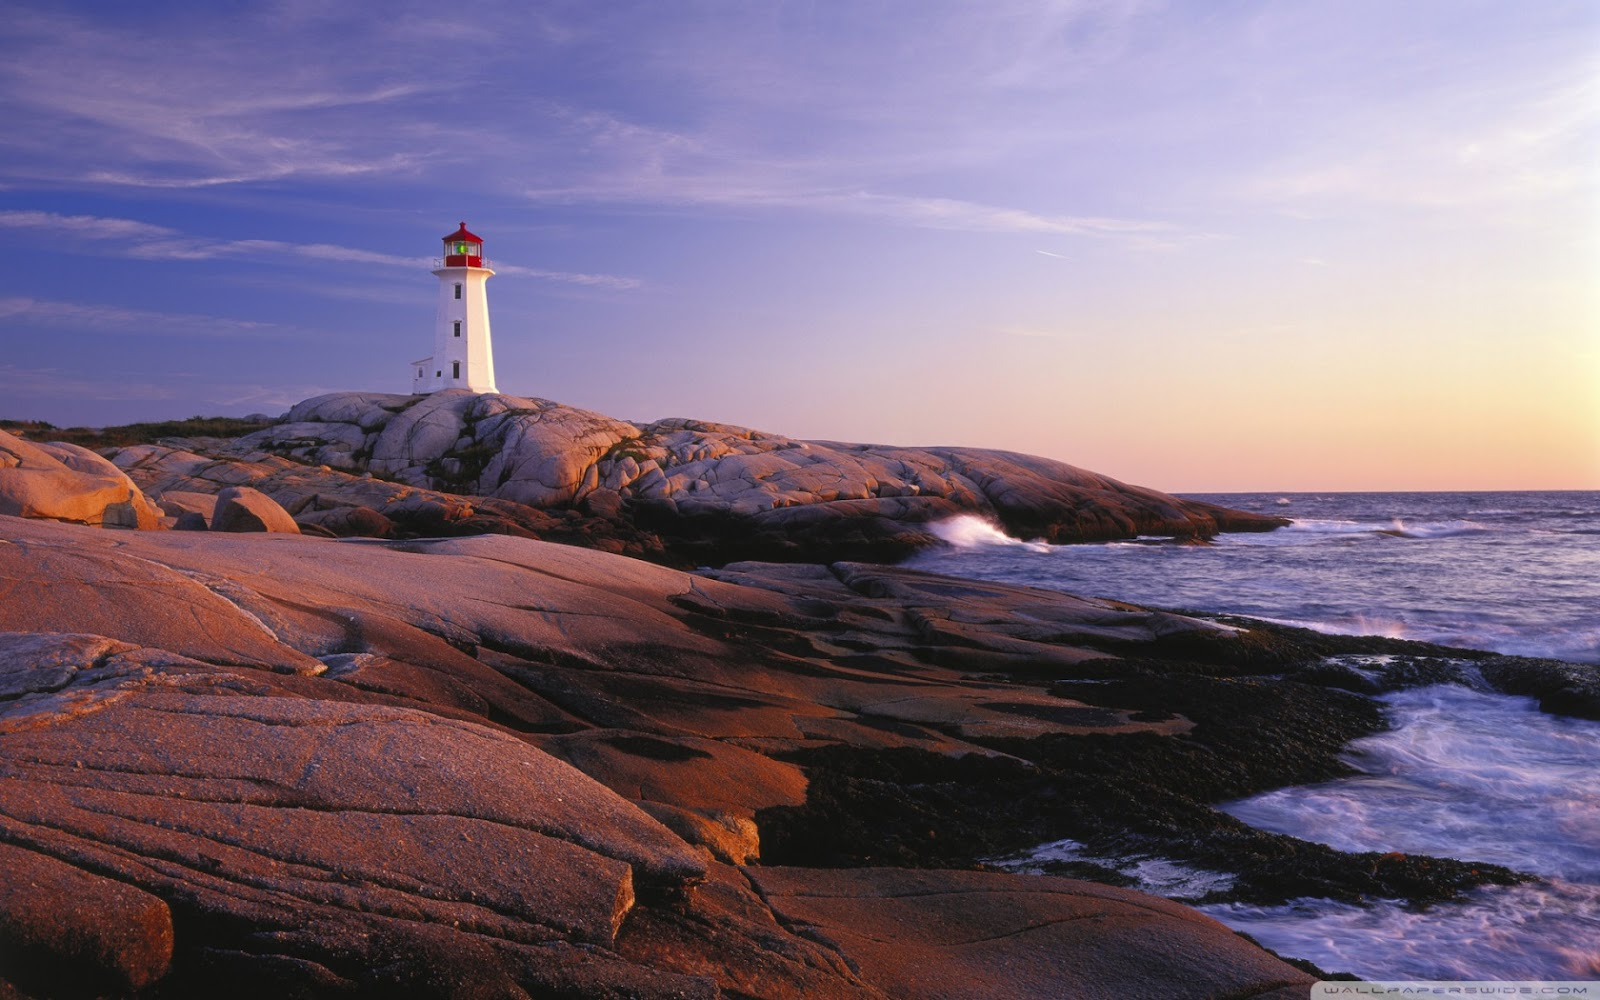 LIght house at Peggy's Cove, Nova Scotia